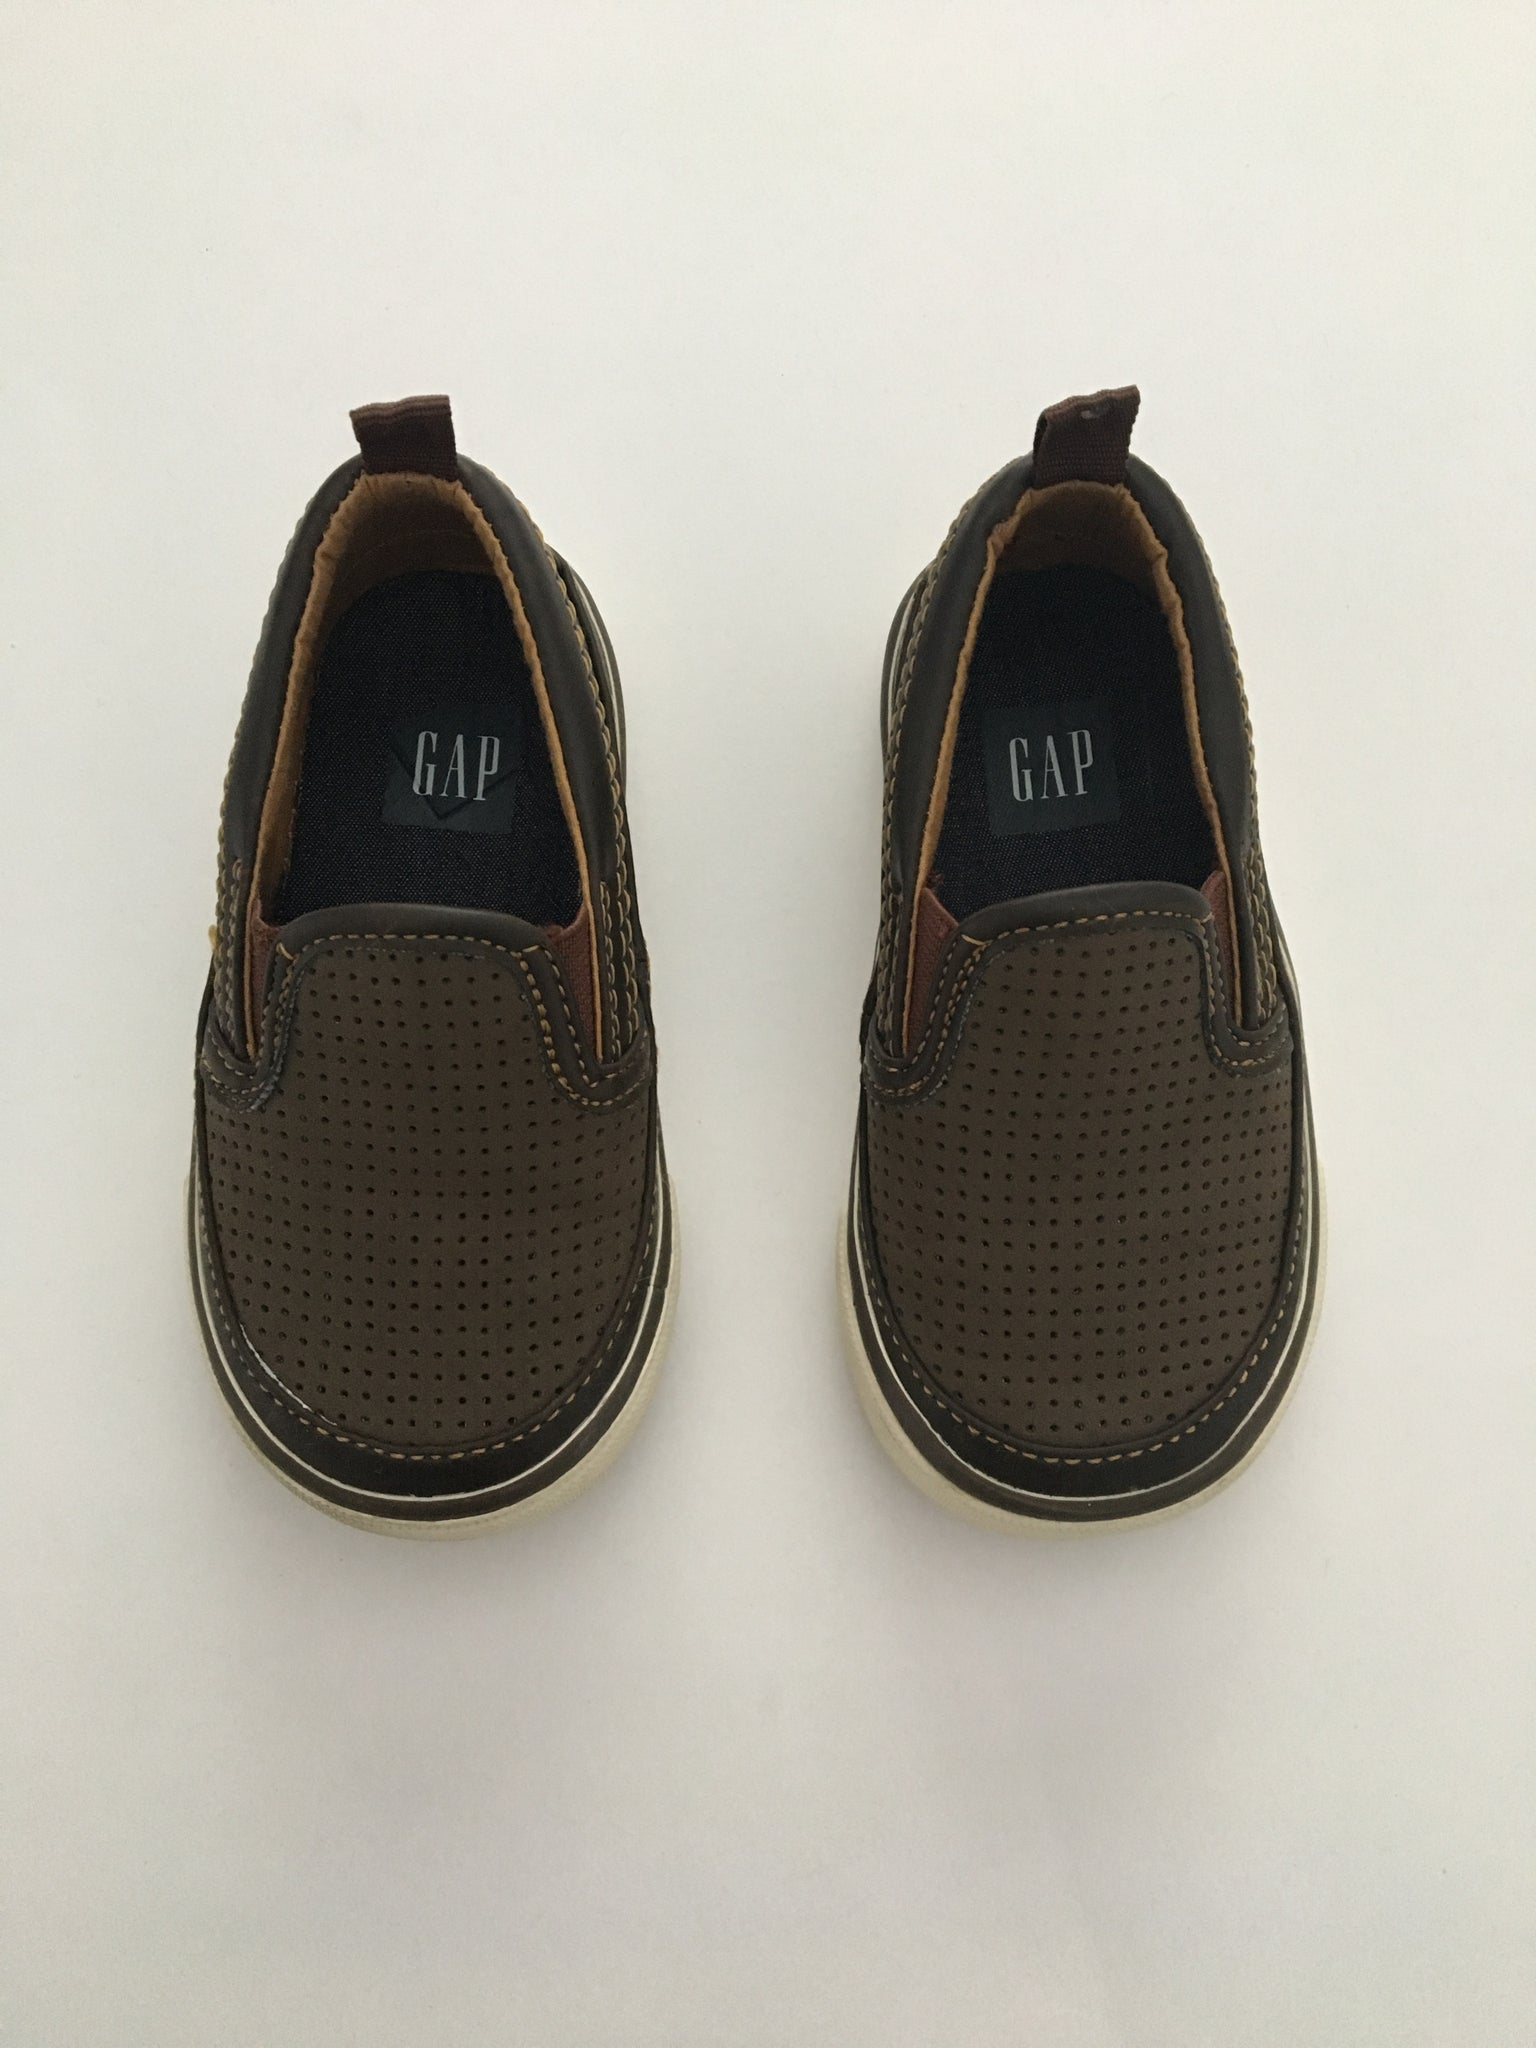 Baby Gap Loafers | Size 5